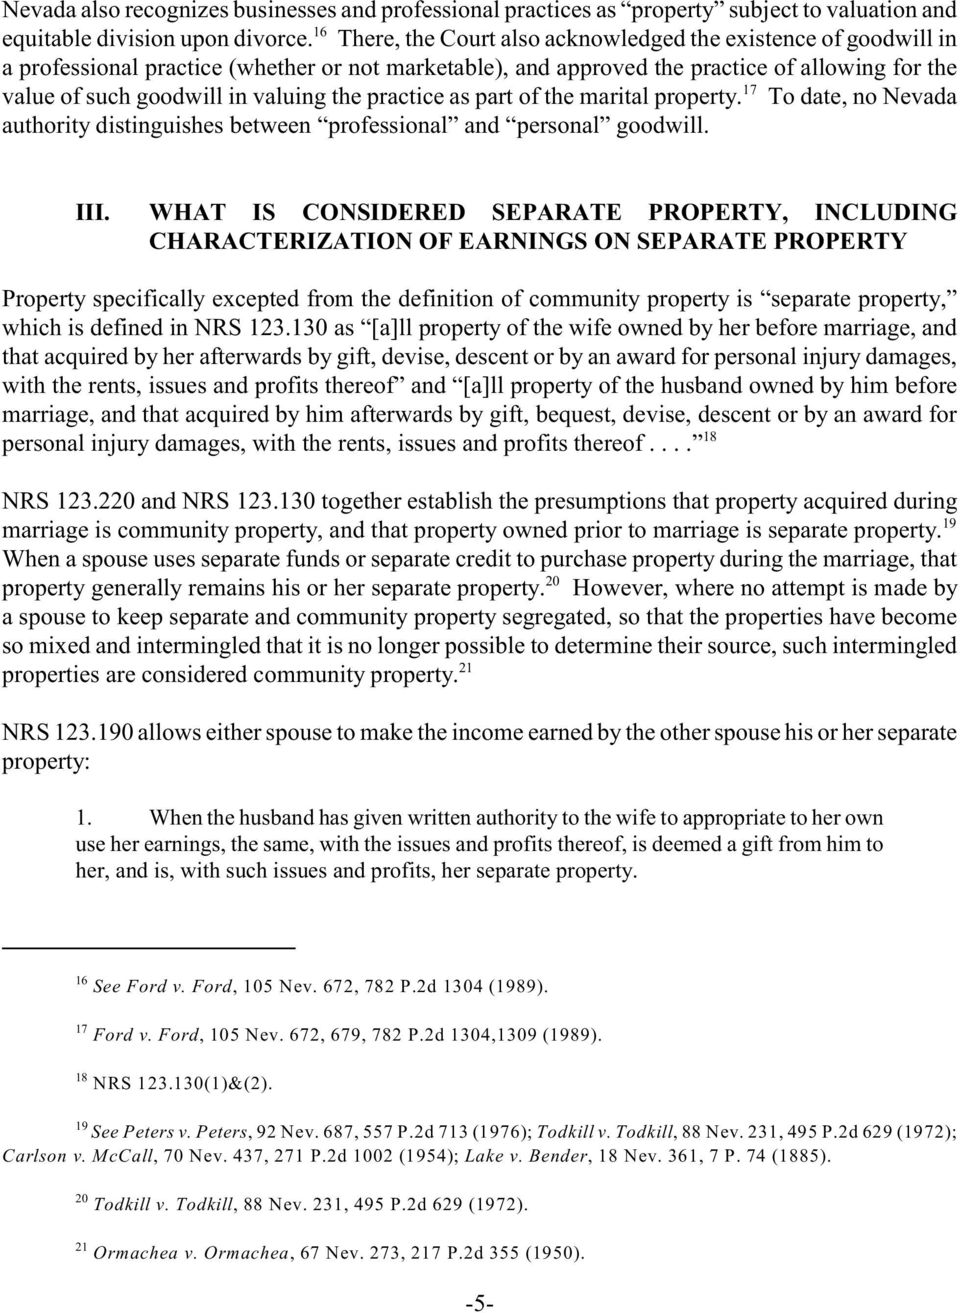 the practice as part of the marital property. To date, no Nevada authority distinguishes between professional and personal goodwill. III.